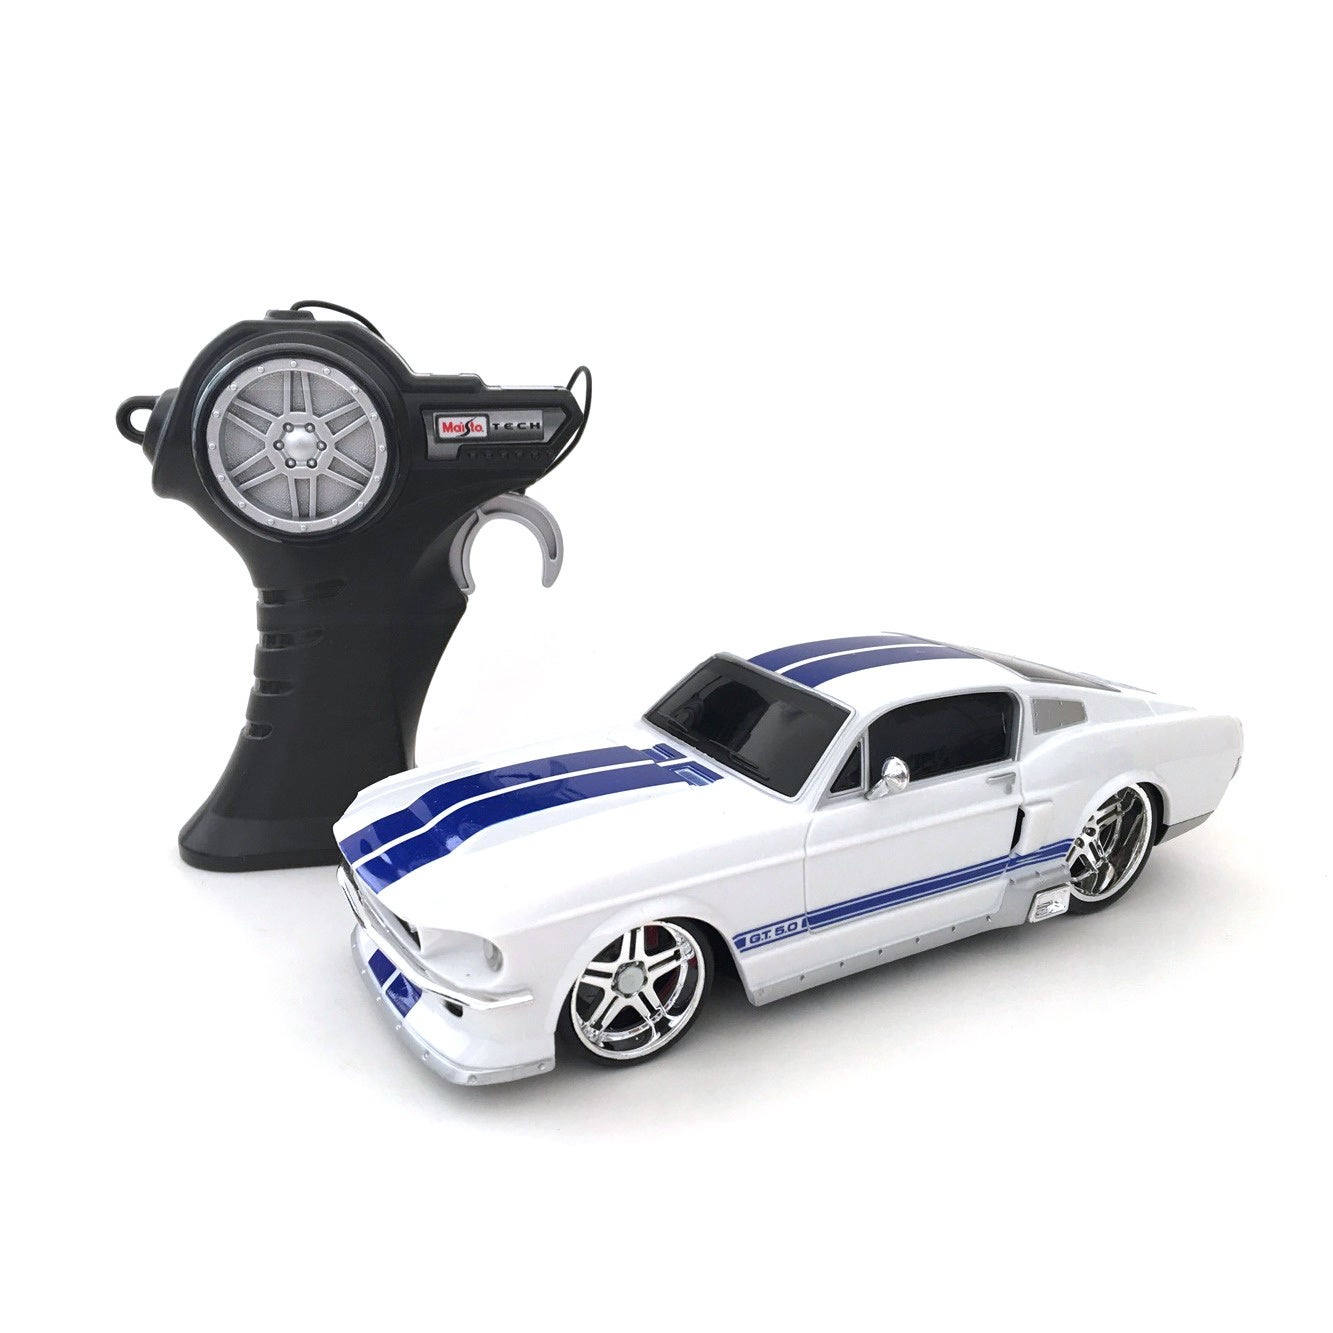 Maisto ford mustang gt r b remote control car